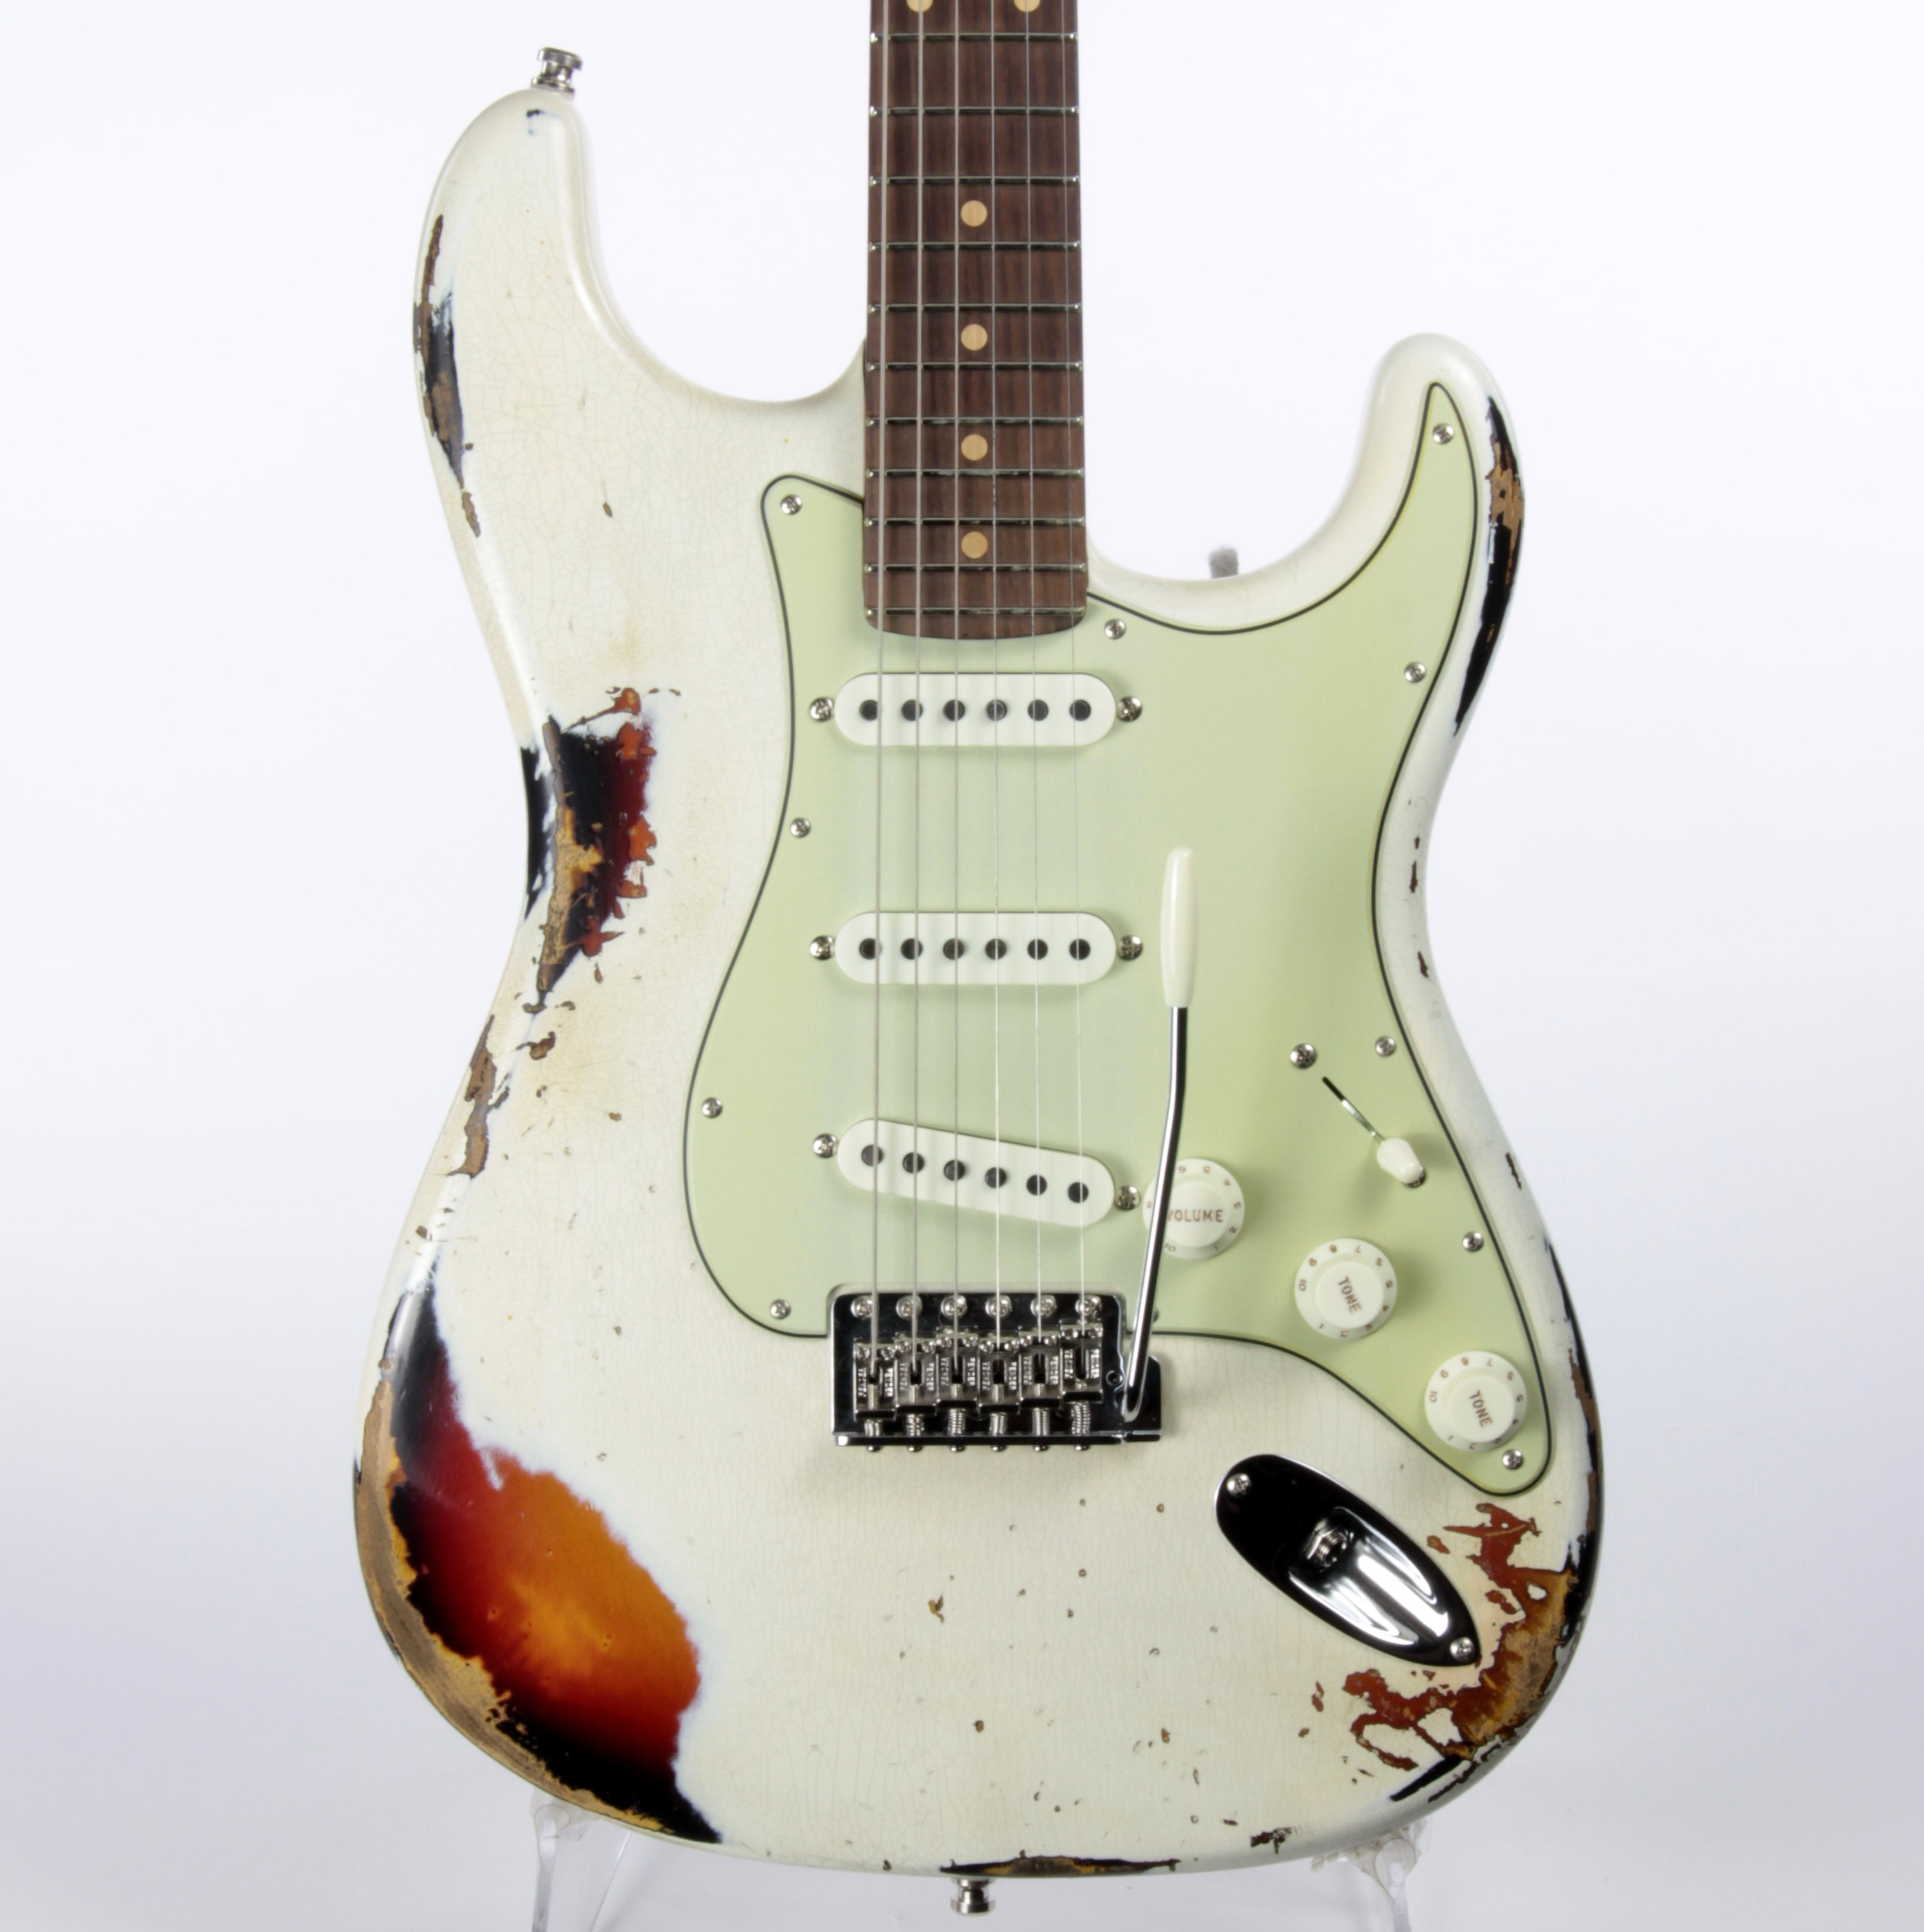 2020 Fender '64 Custom Shop GT11 Heavy Relic Stratocaster Roasted Flame Neck! Olympic White/Sunburst Sweetwater